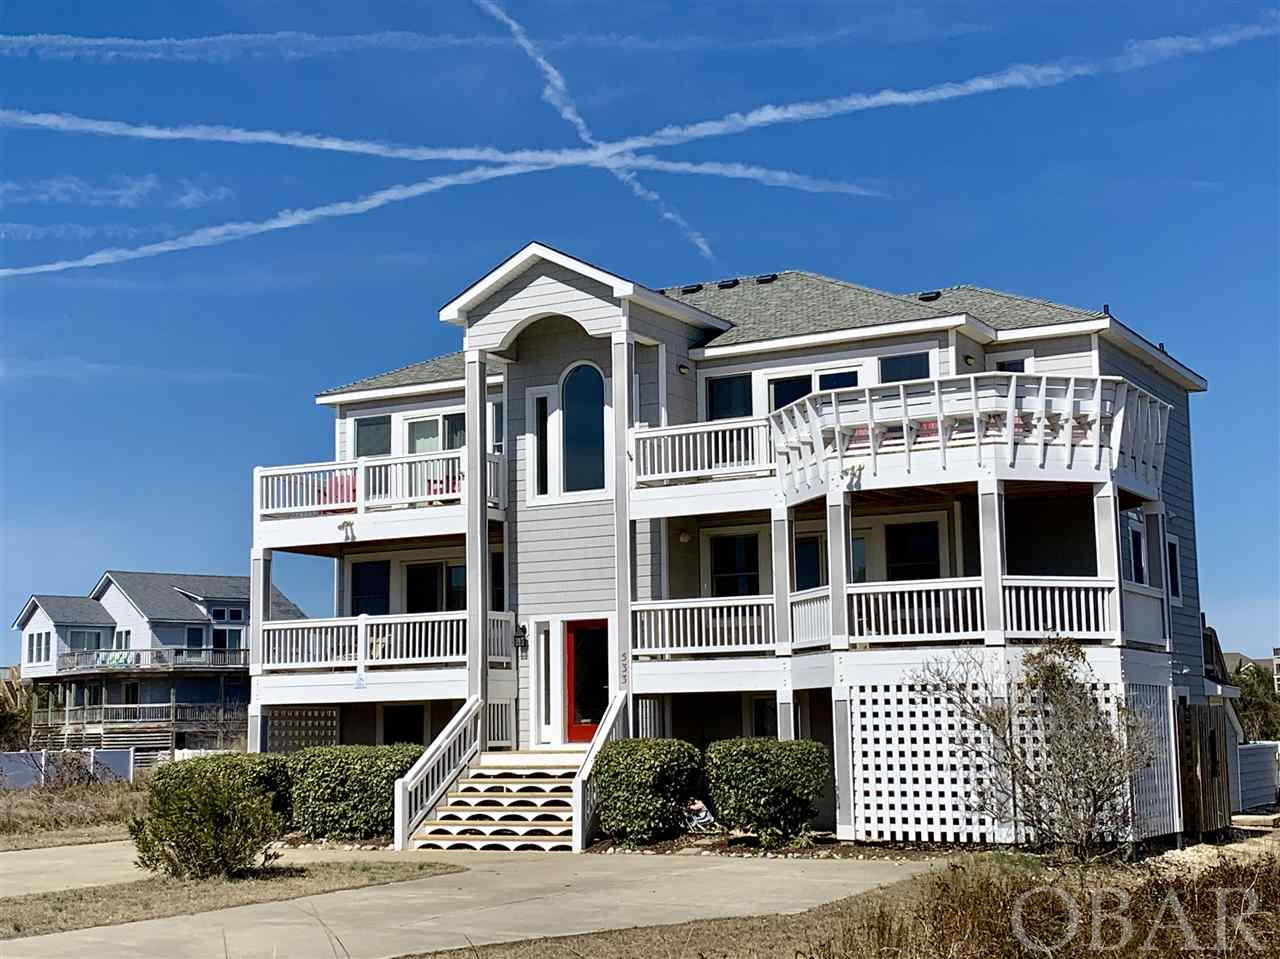 This impeccably maintained 8 bedroom, 8 1/2 bath home is located at the end of a quiet cul-de-sac in Section A of Ocean Sands which offers large homesites, a private uncrowded beach access and some of the widest beaches in Corolla. 7 bedrooms have attached bathrooms, 3 bedrooms have private decks, 2 living areas and a game room offer plenty of room to spread out. The pool and hot tub make this home a must see. As of 9/11, over $50,000 booked for 2020!!  Updates include: 2019 -Air handler/heat pump, lower level, tankless water heater; 2018 - bedroom tv's, dryer; 2017 - carpet, microwave; 2016 - top floor family room furniture & tv; 2014 - Refrigerator, stove/double oven; 2013 - Top level HVAC, washer; 2012 - 2 dishwashers ; 2010 - Hot tub, continuous flow hot water heater